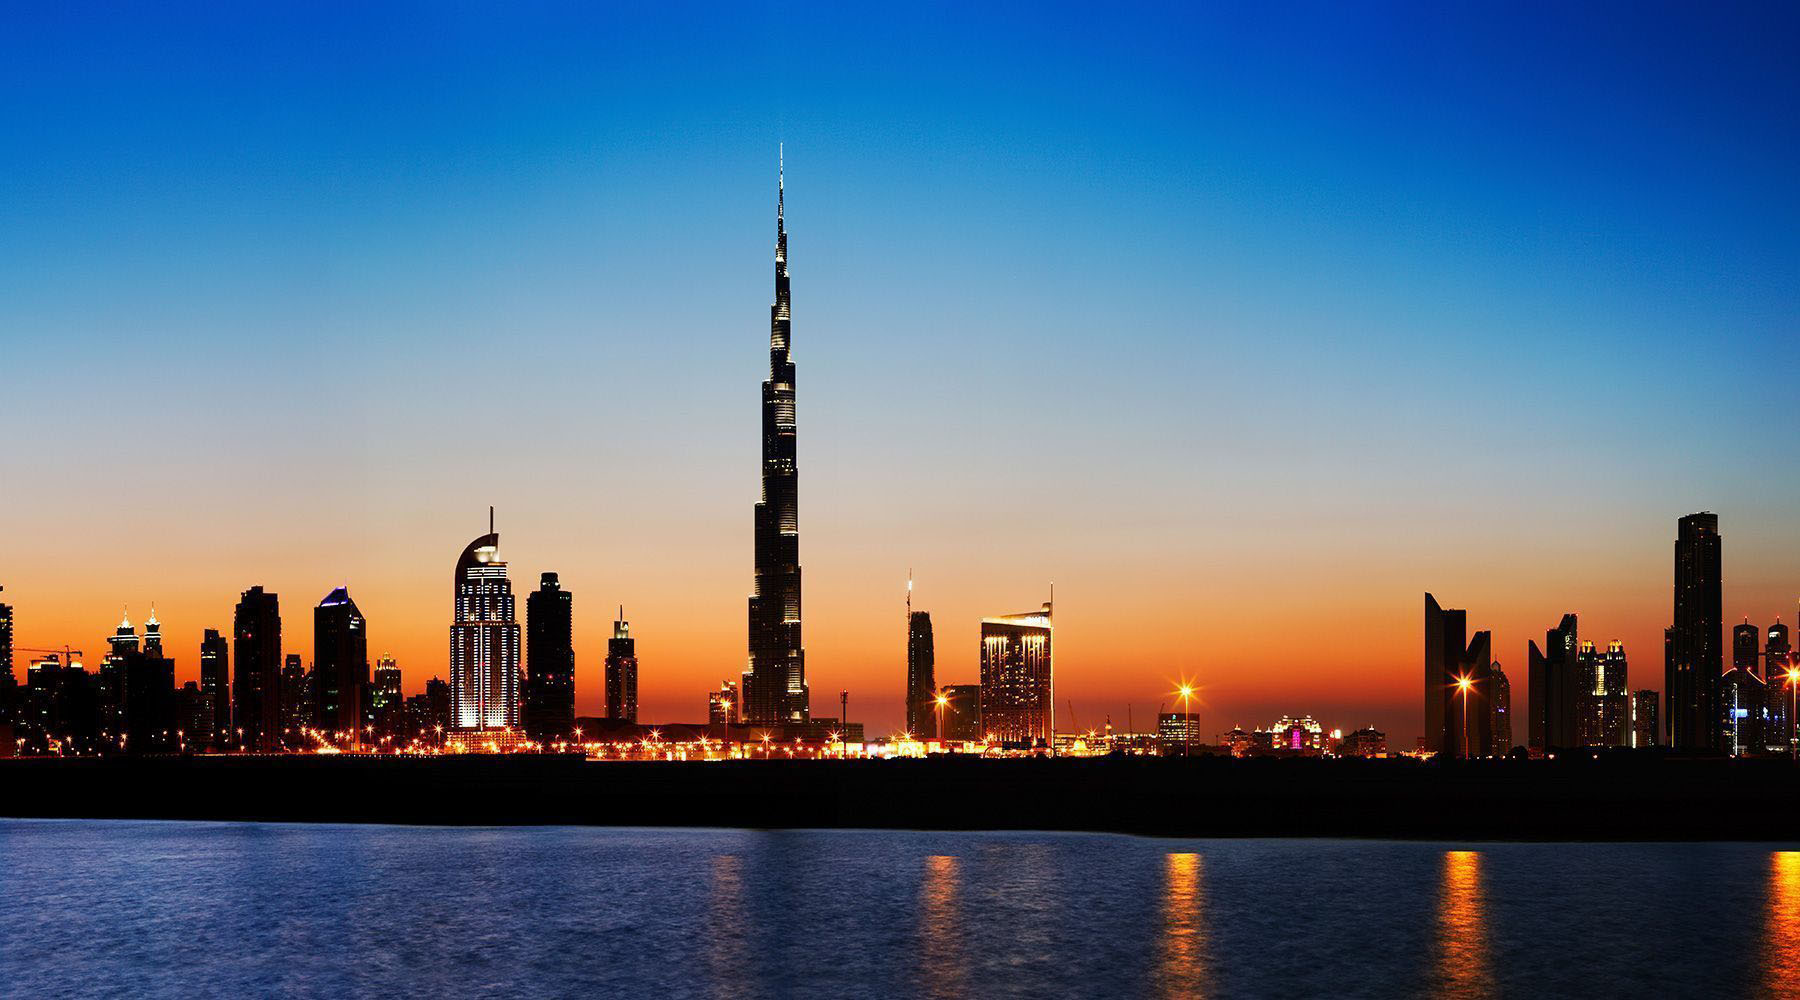 The Burj Khalifa and the skyline of Dubai, UAE